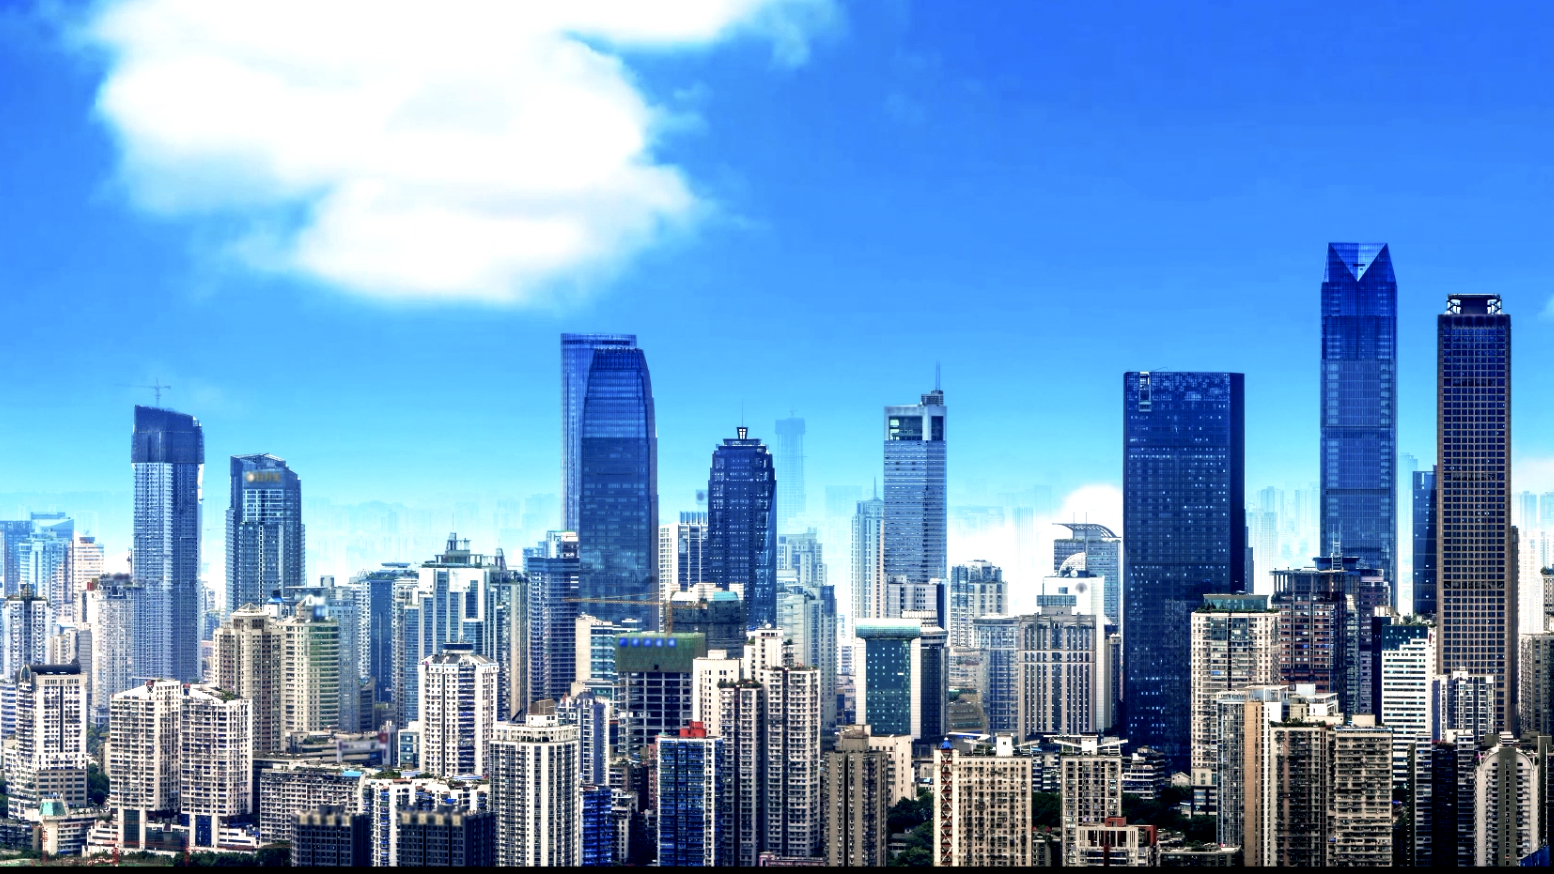 Scholars and businessmen applaud China's economic recovery